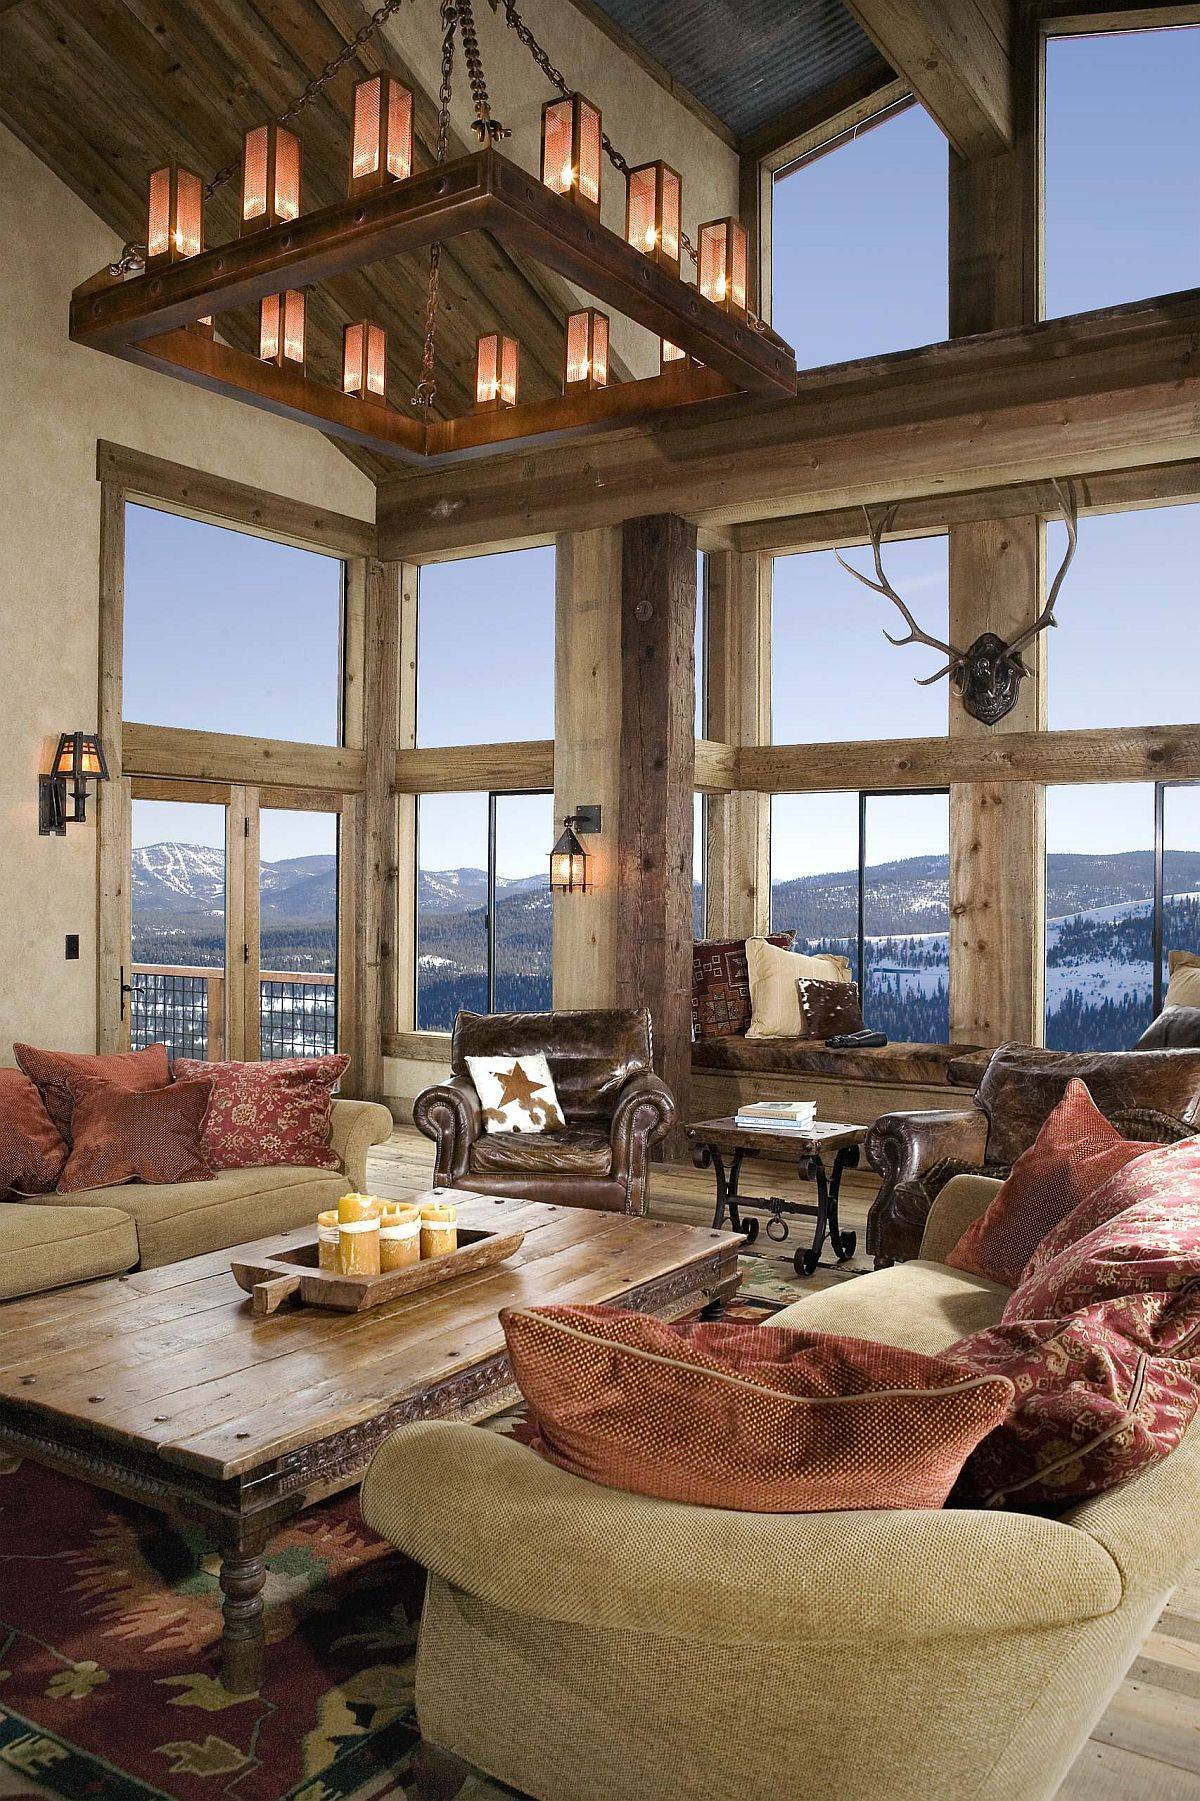 It-is-throw-pillows-that-add-color-to-this-spacious-rustic-living-room-47901